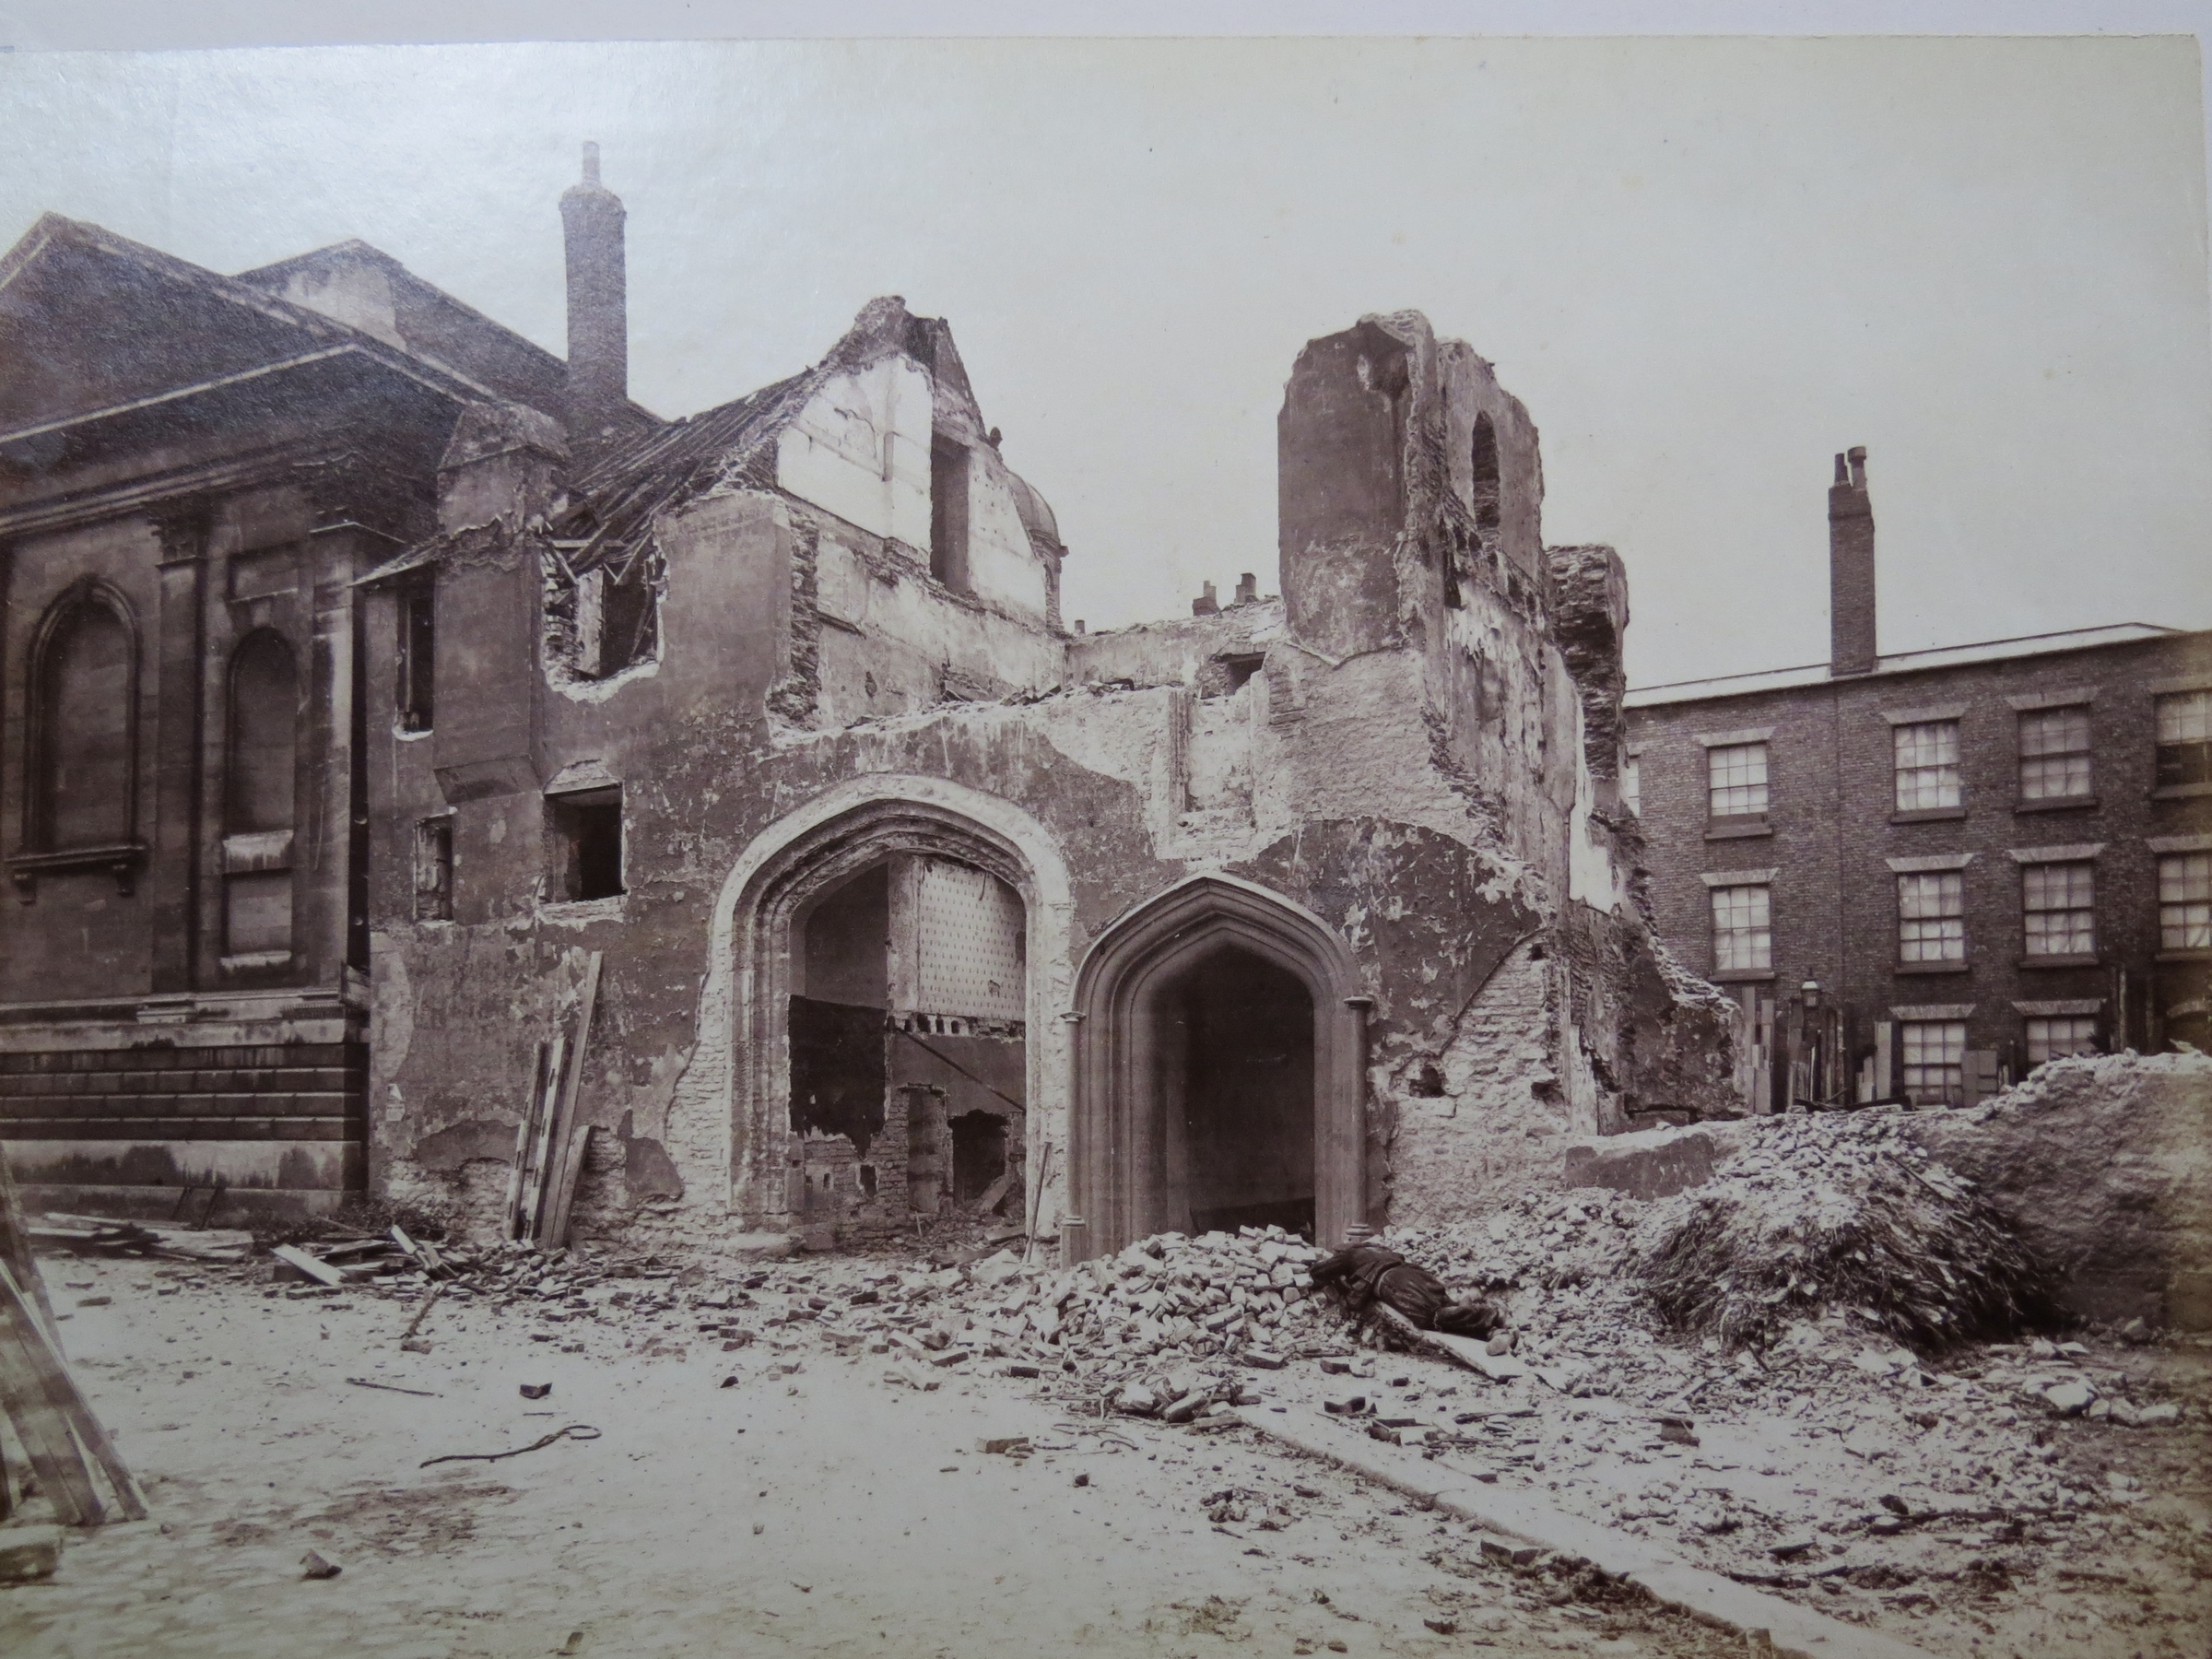 The Demolition of Trinity Hall, Cambridge in the 1880s.